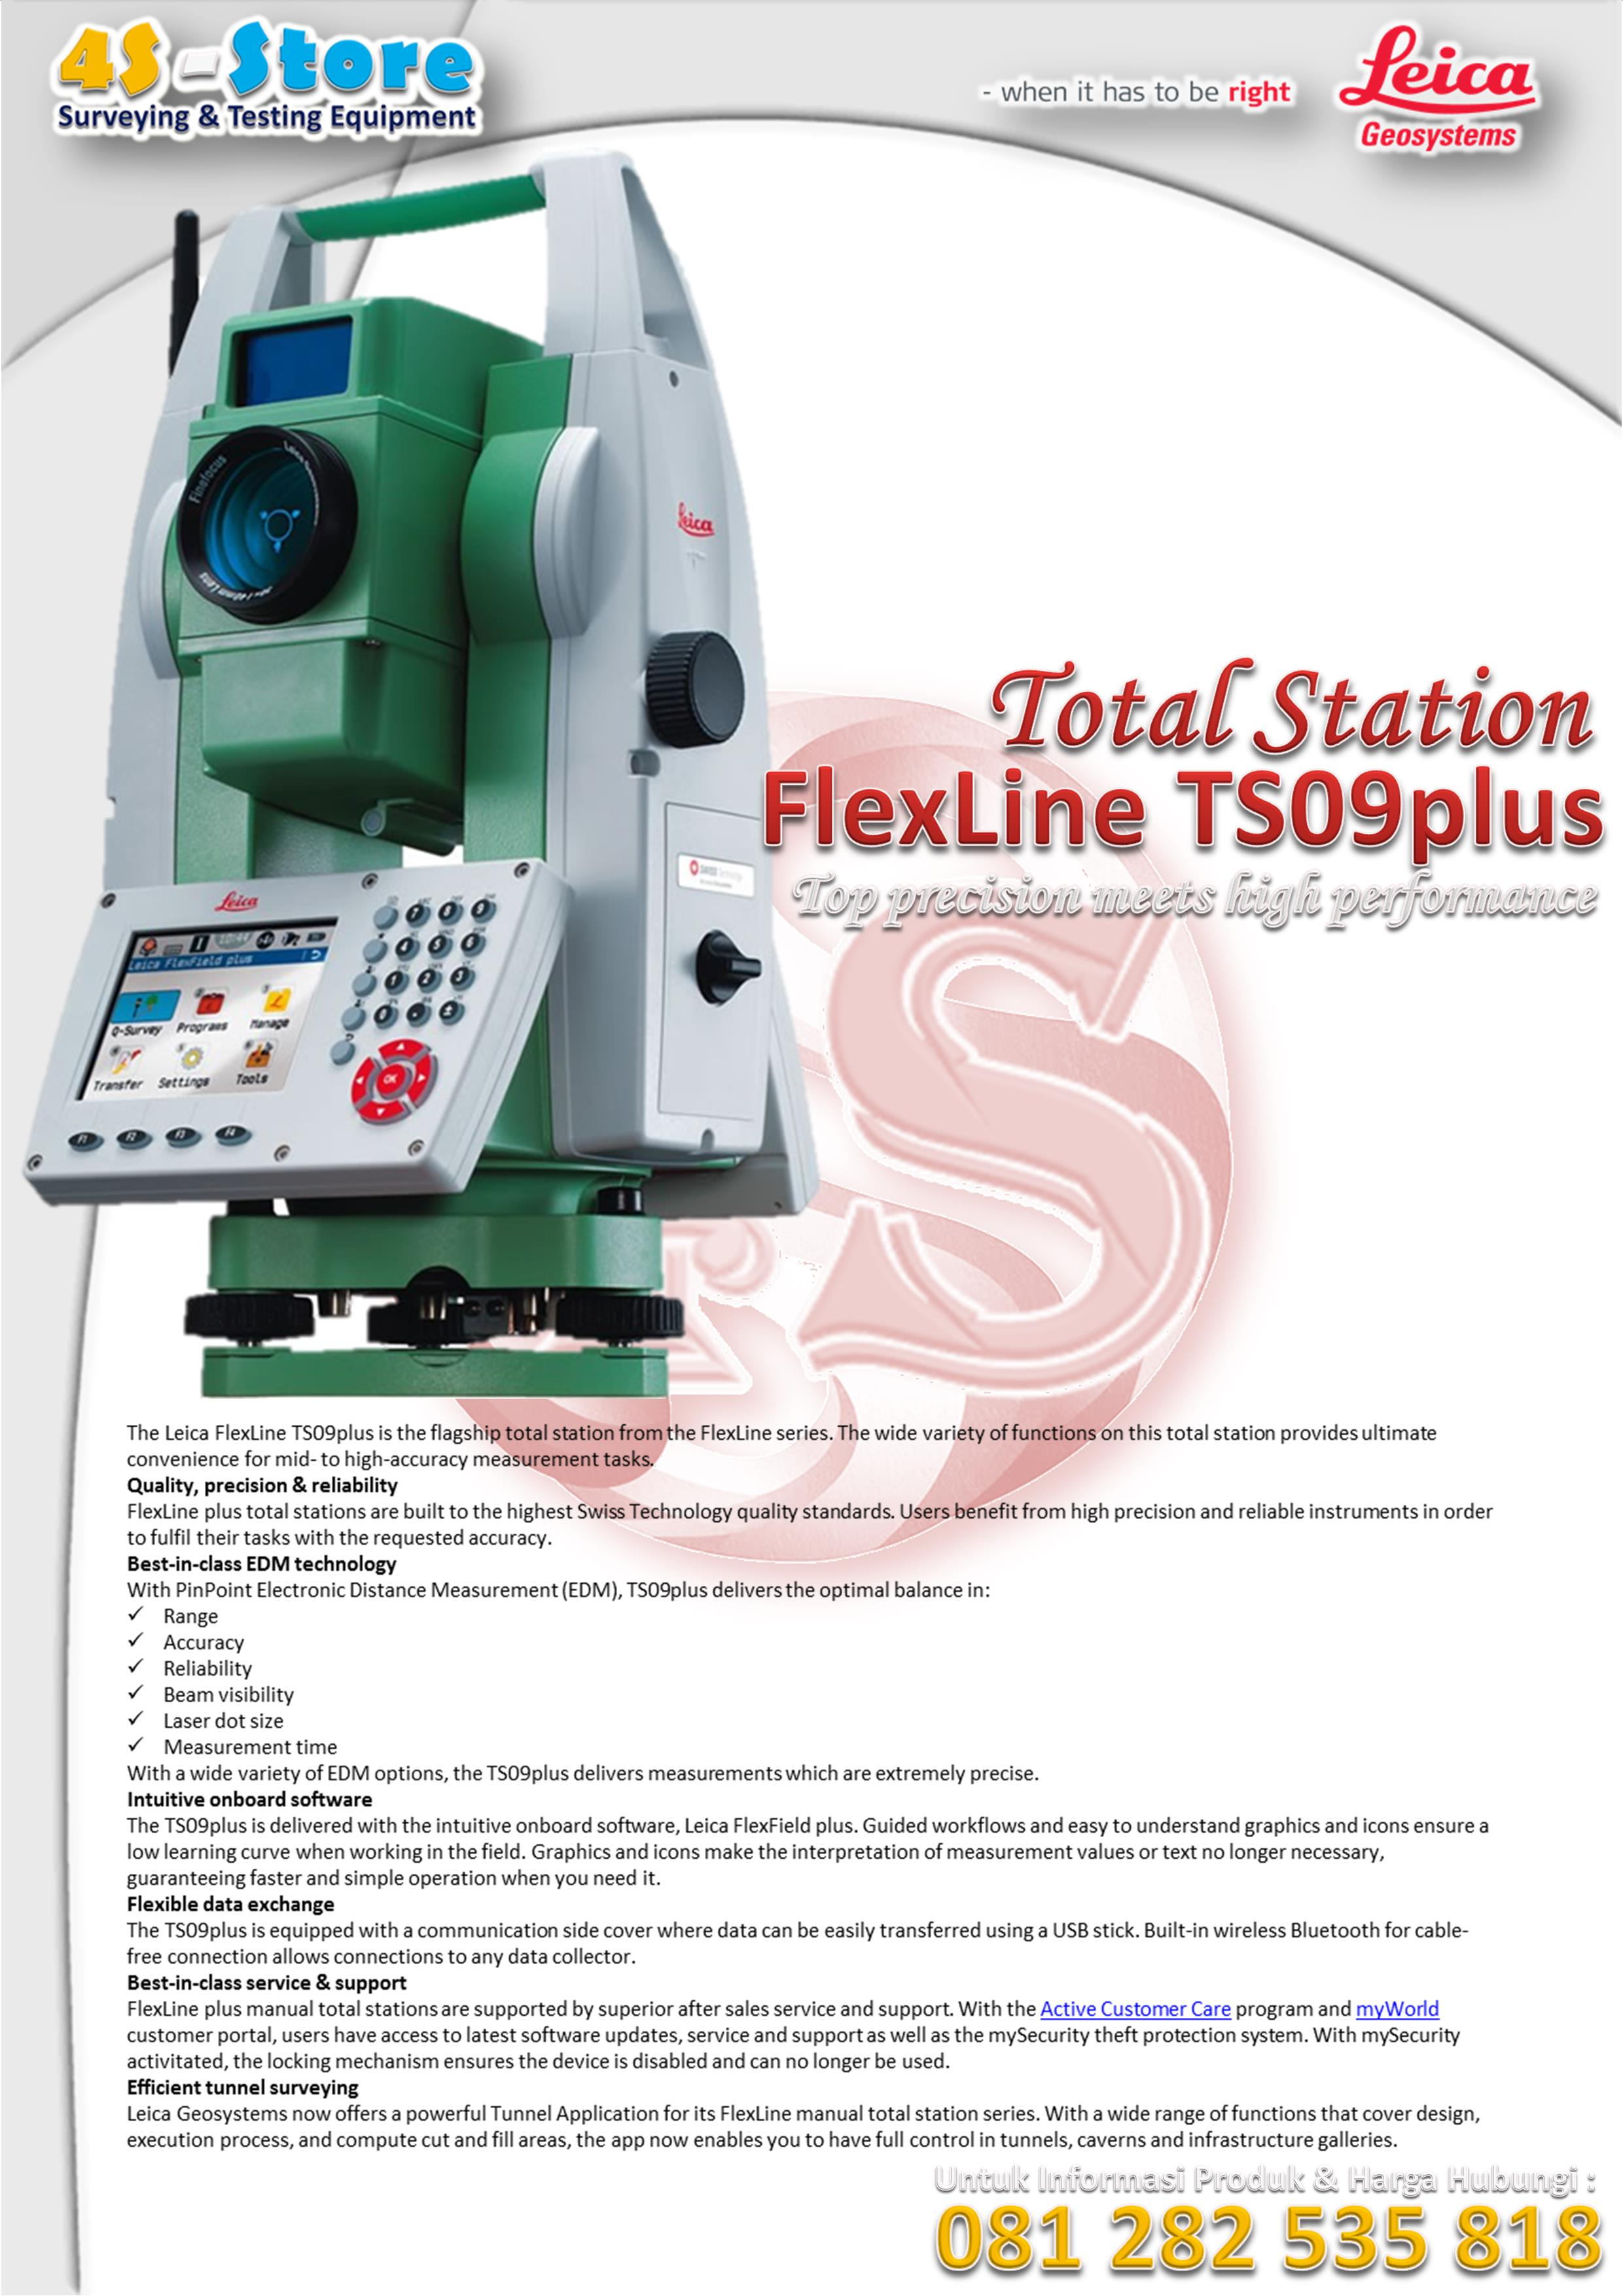 LEICA Geosystem  All Produk  4S Store Surveying  Testing Equipments jual gps geodetic jual